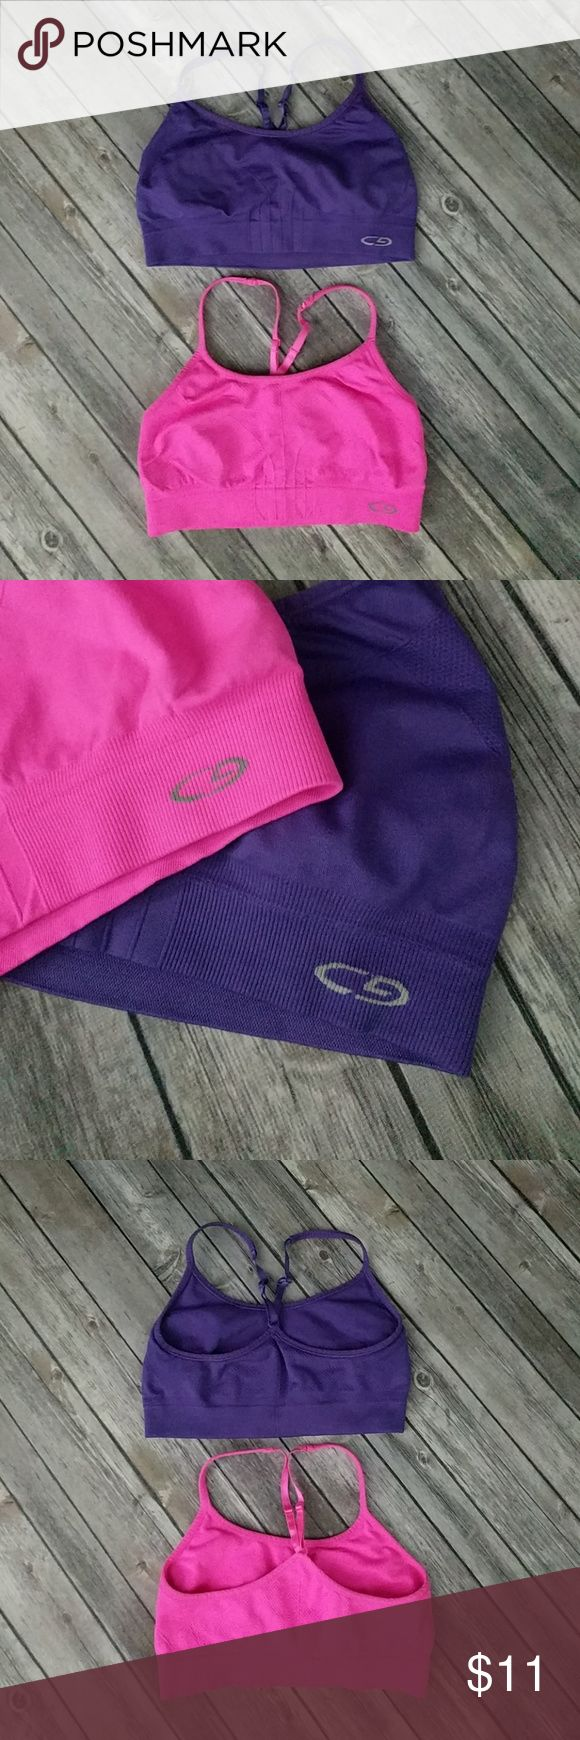 "C9 by Champion Sports Bras Bundle 1 pink and 1 purple racerback sports bras in great used condition. Soft and stretchy. Bust pink 11 1/2"". Bust purple 11 3/4"". Champion Intimates & Sleepwear Bras"